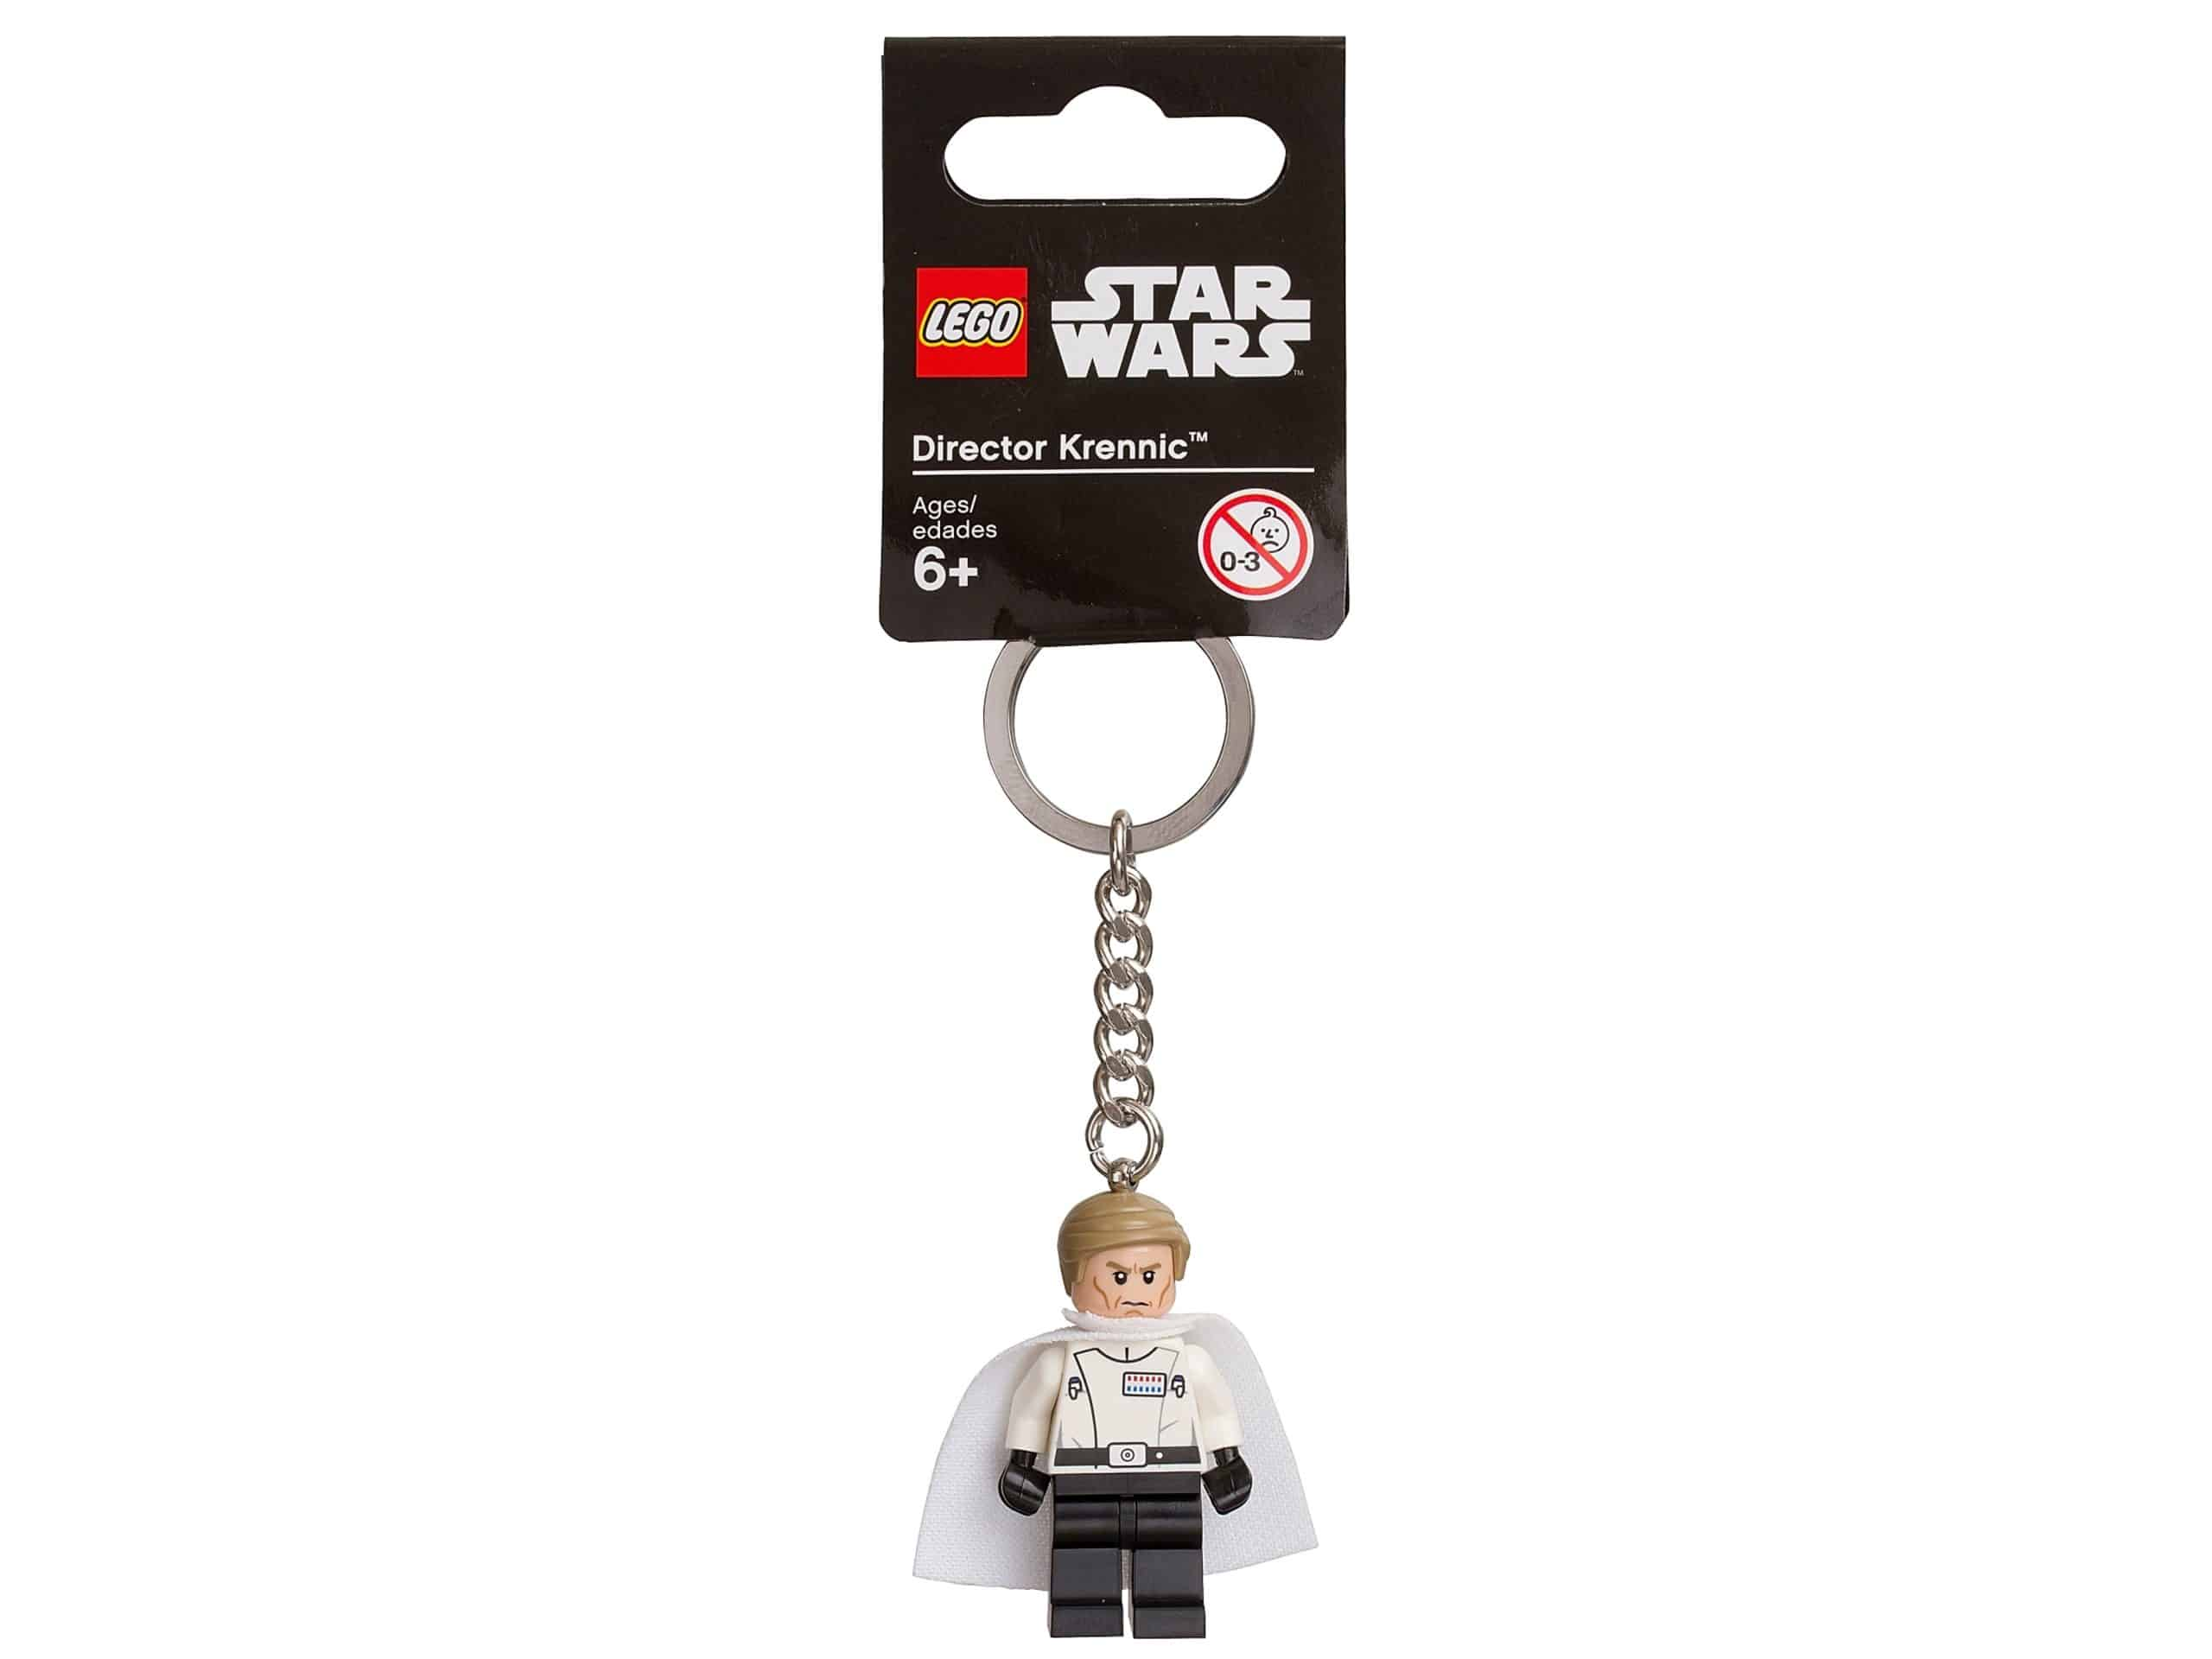 lego 853703 star wars director krennic noglering scaled